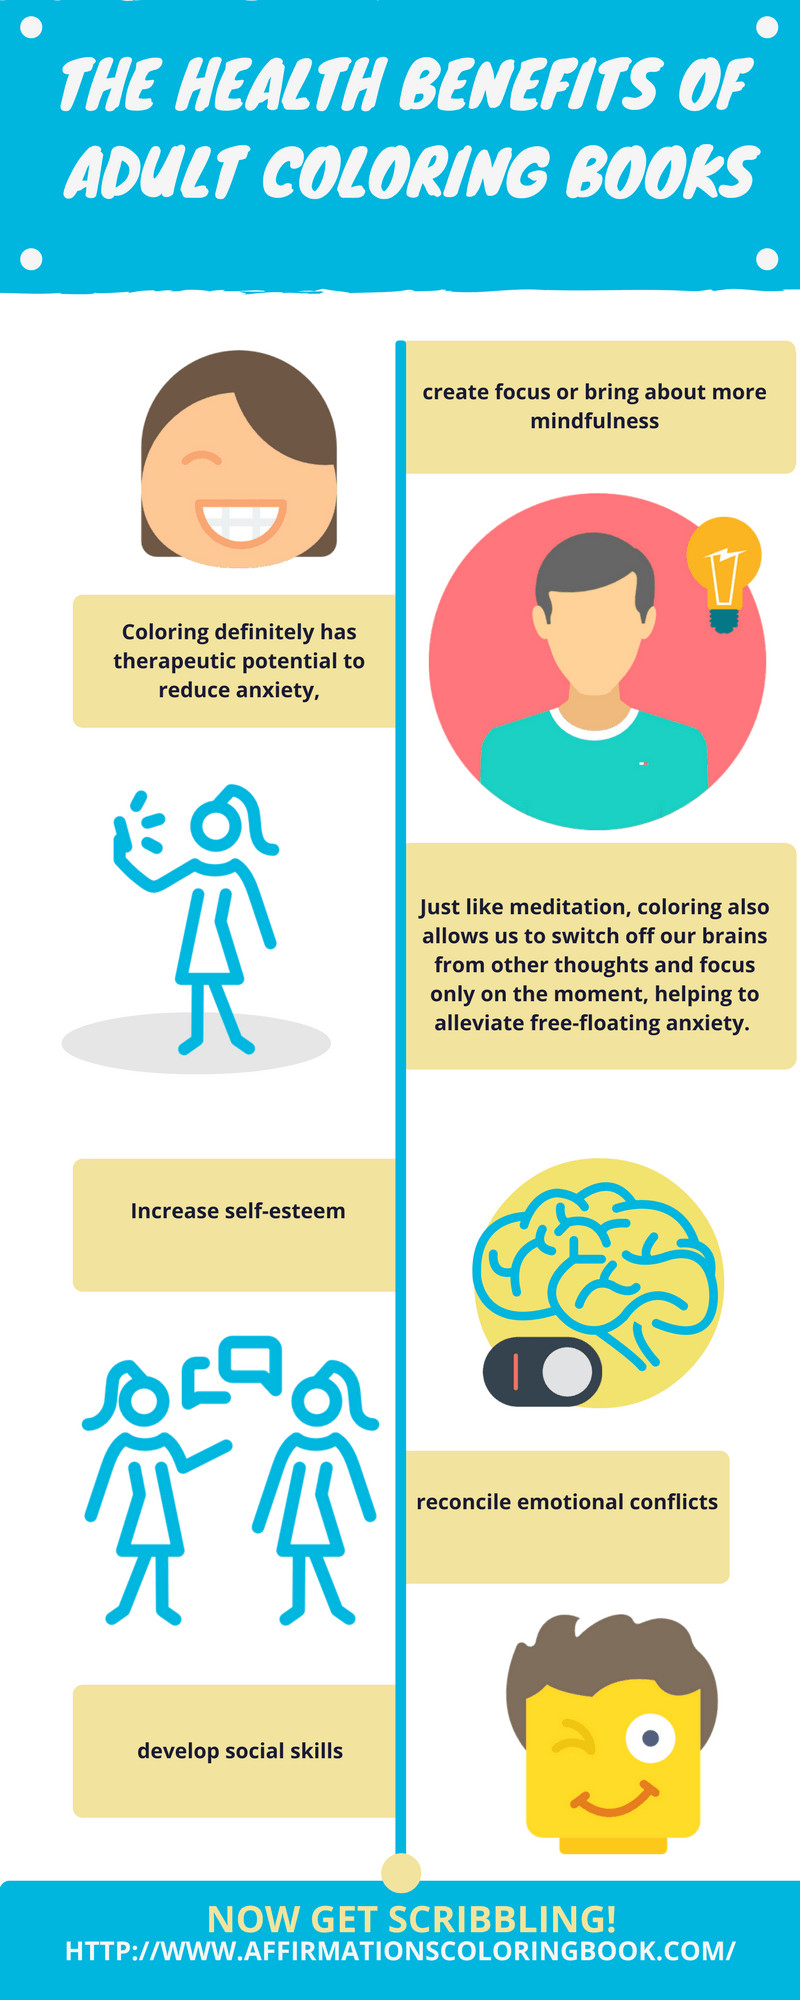 Benefits Of Adult Coloring Books  The Health Benefits of Adult Coloring Books Infographic